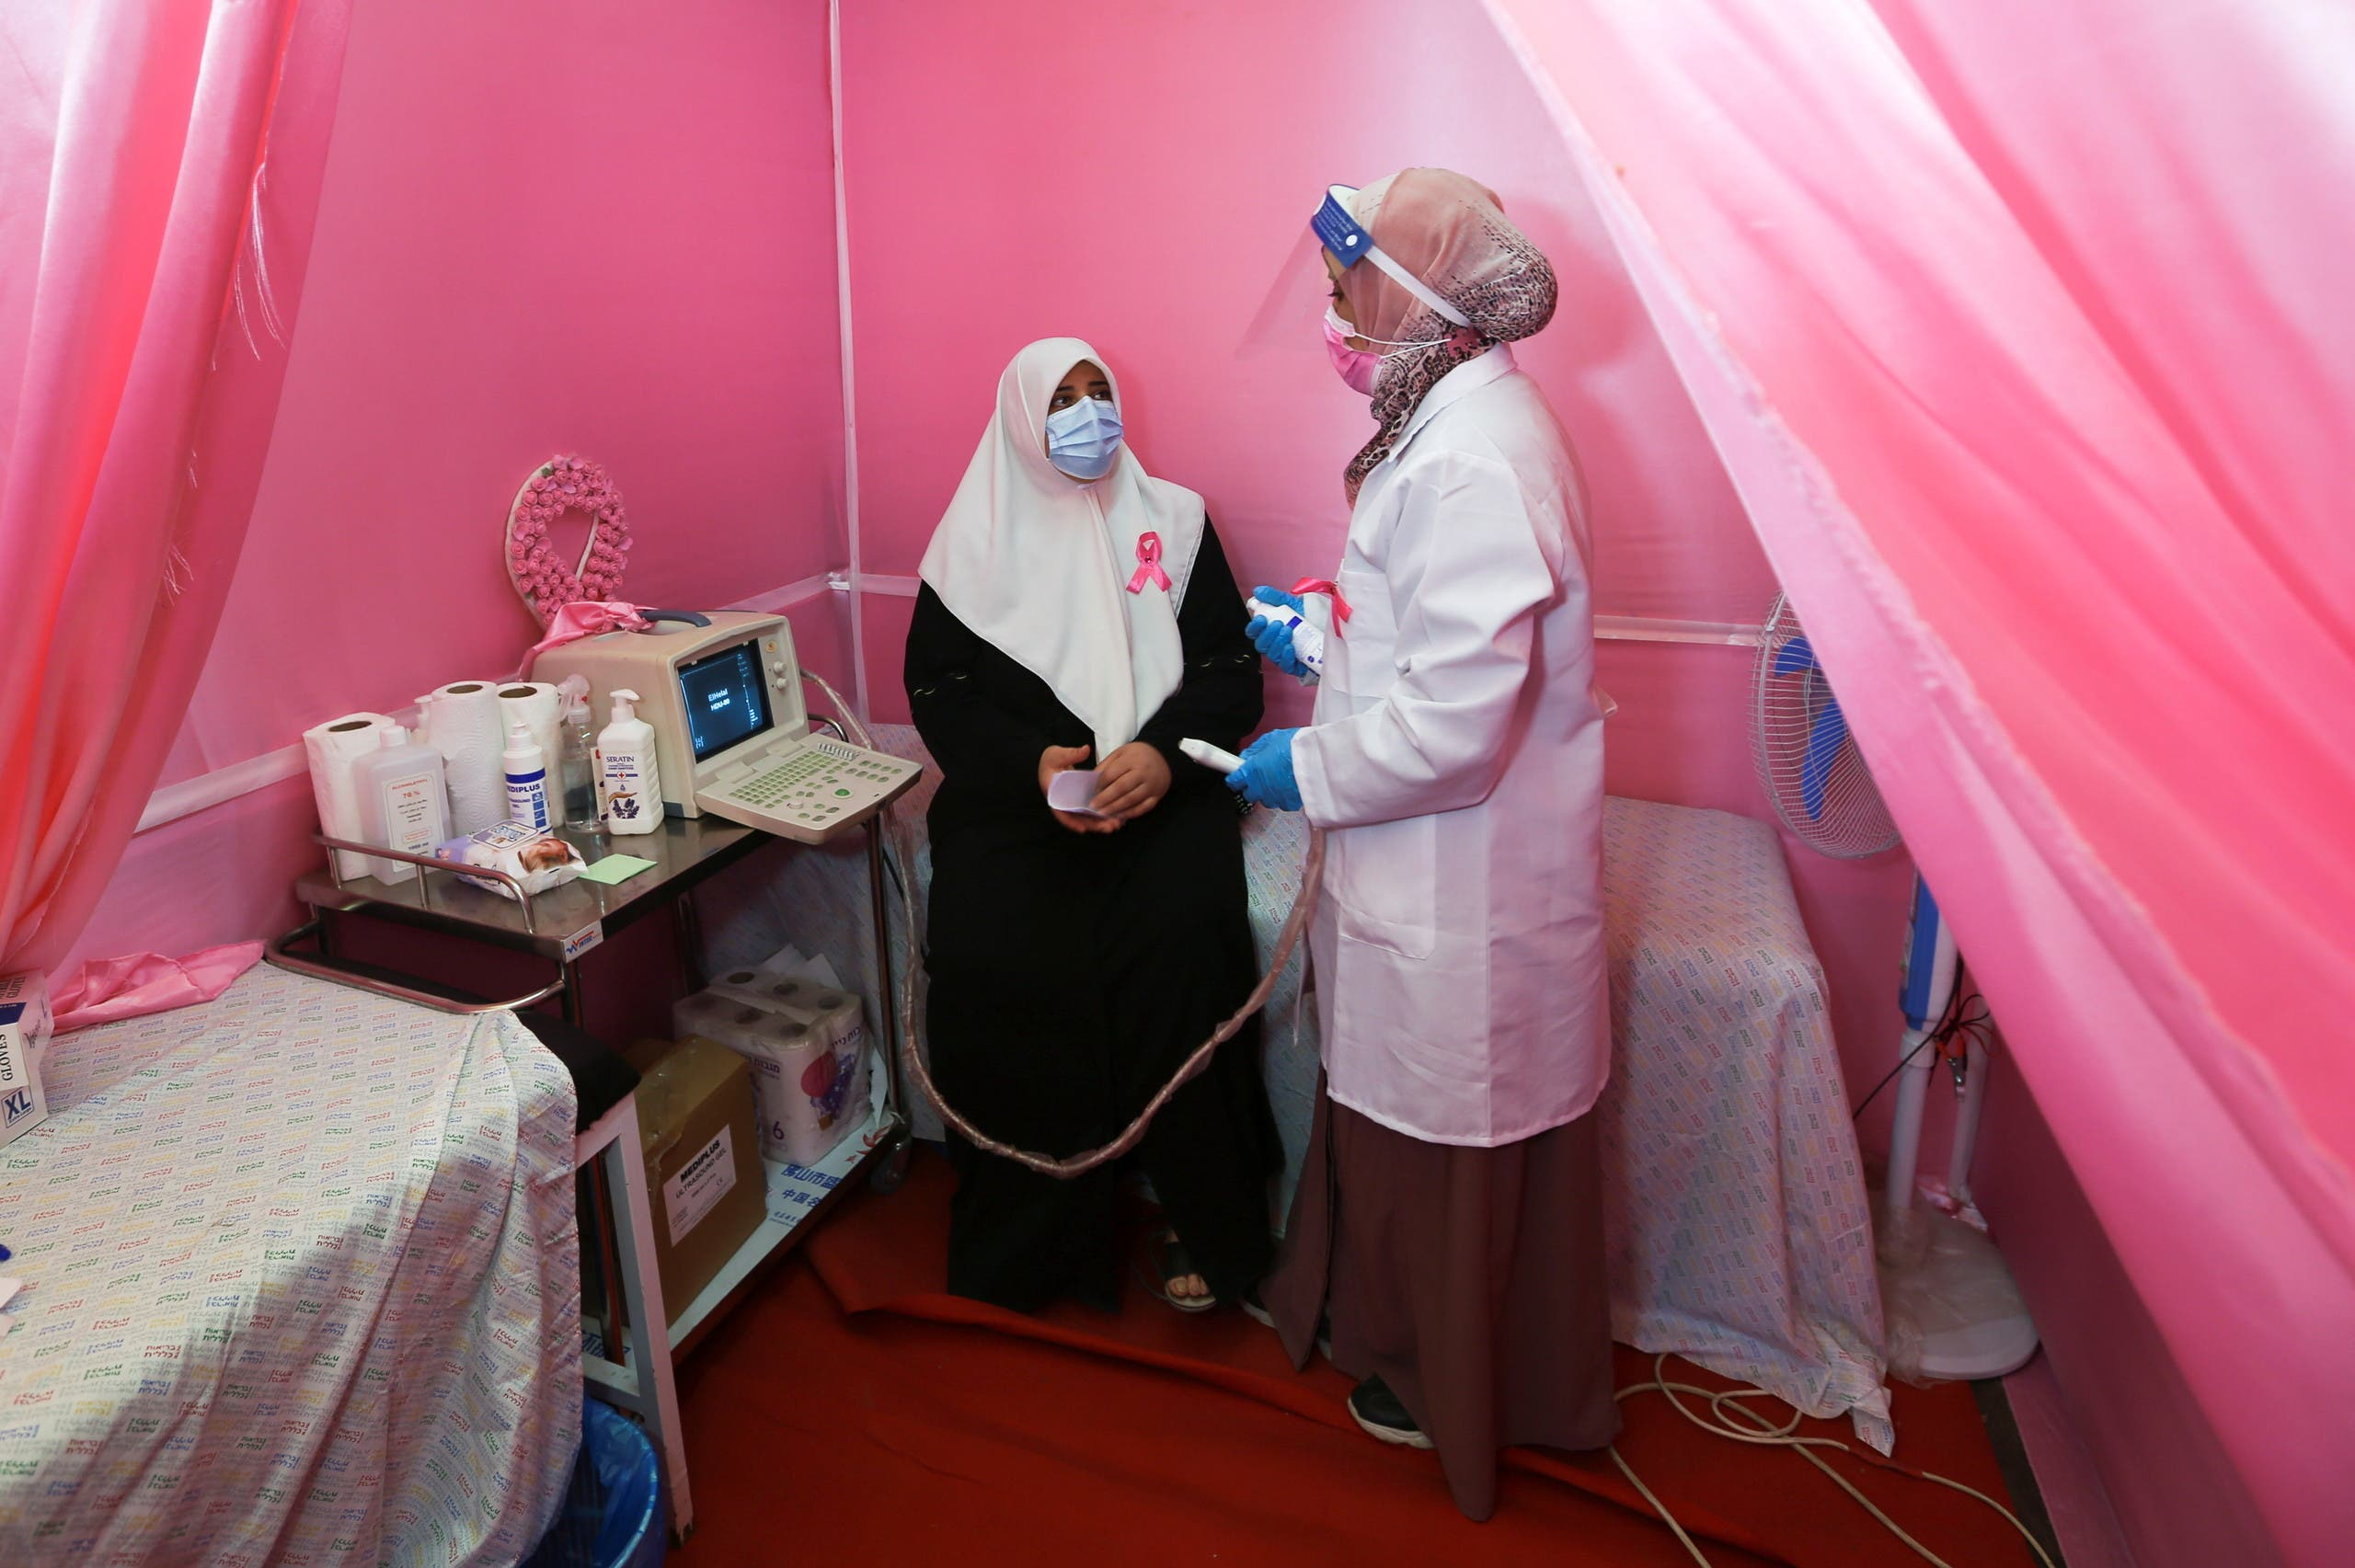 A Palestinian doctor prepares a woman for a breast cancer check up inside a mobile clinic set up in a truck, during a campaign aimed to raise public awareness in Gaza over the need for early tests to discover breast cancer, in Khan Yunis, in the southern Gaza Strip, October 7, 2021. (Reuters)